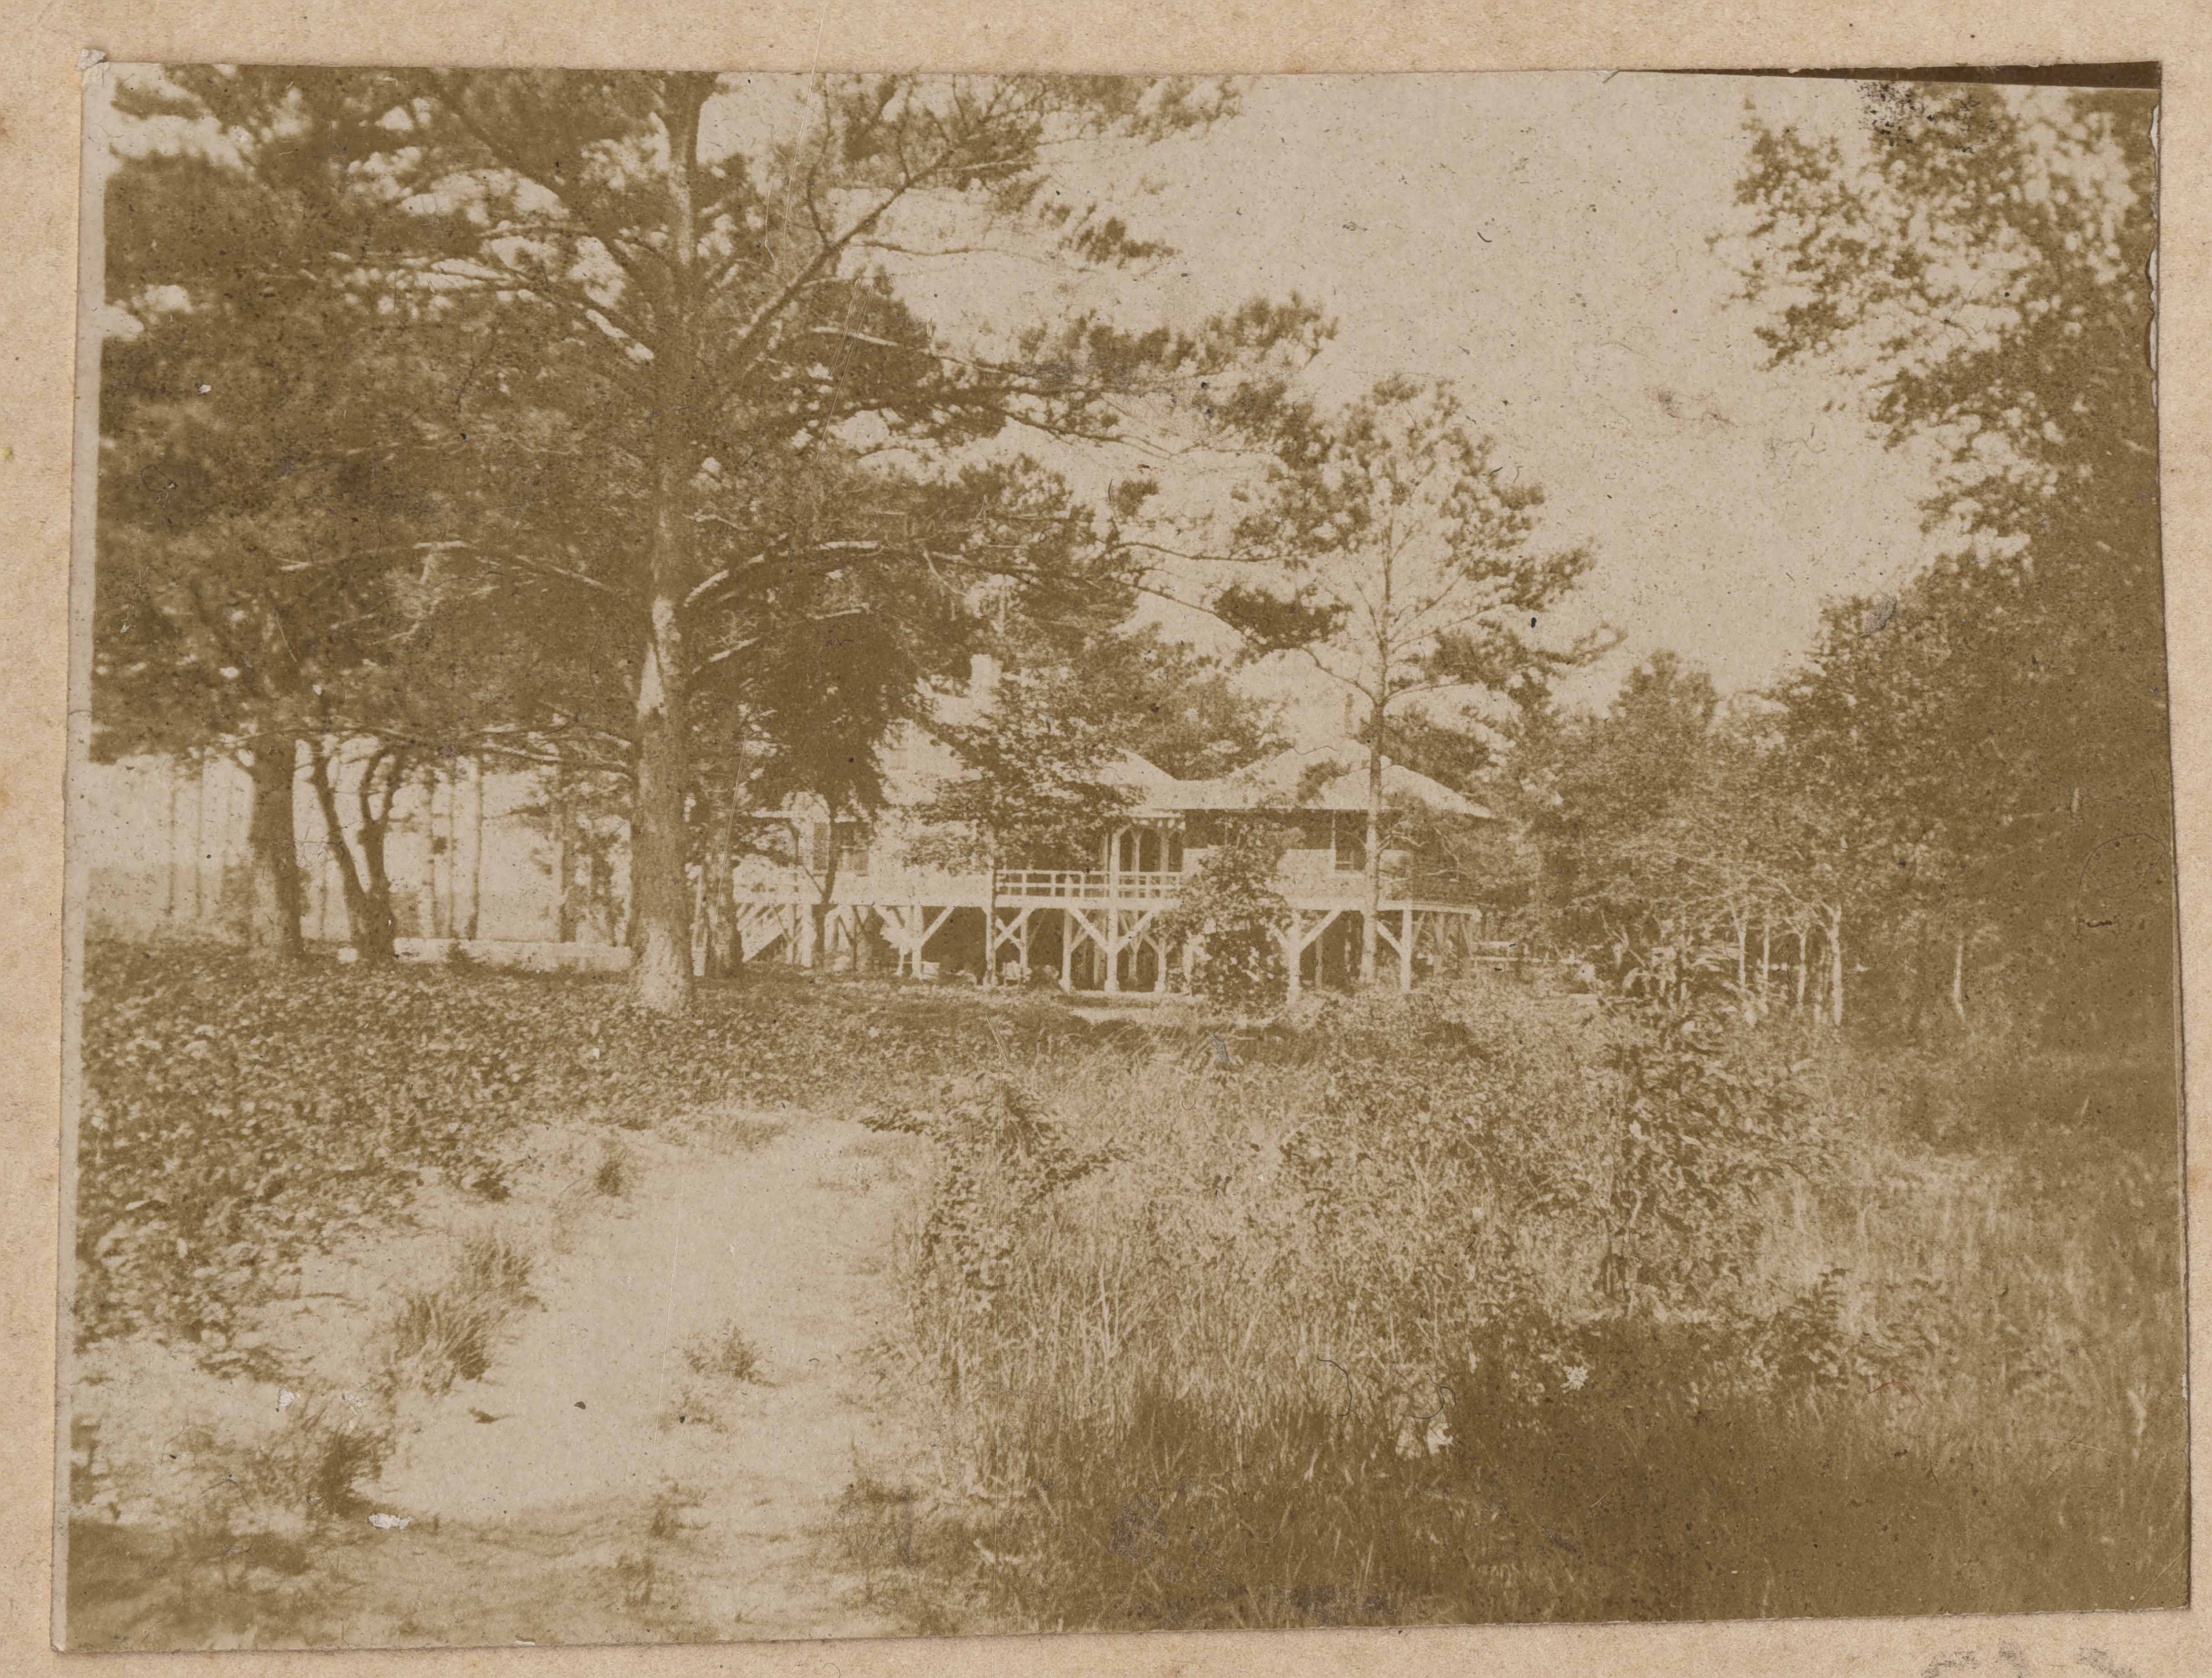 Yet another view of Main House at Halls Island